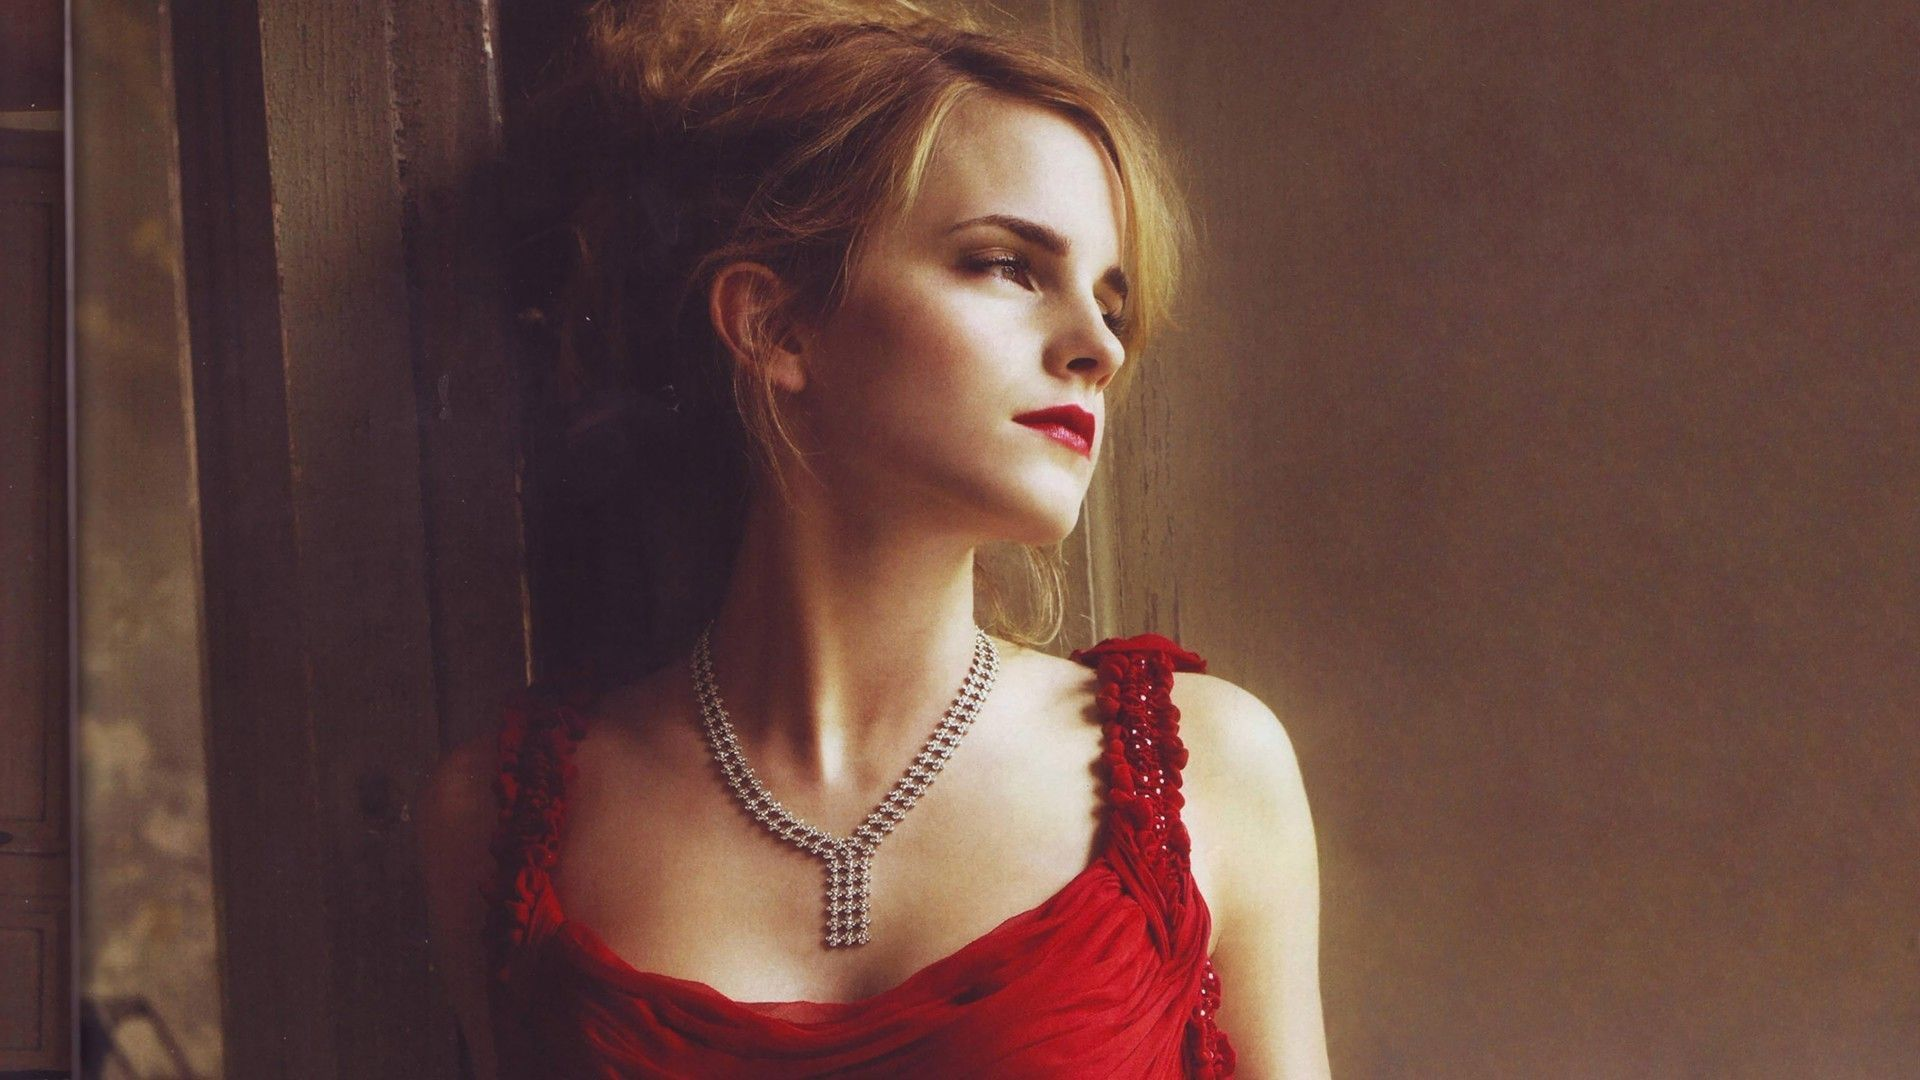 """1920x1080 Emma Watson Wide Full HD 1080p Images Photos Pics Wallpapers ..."""">"""